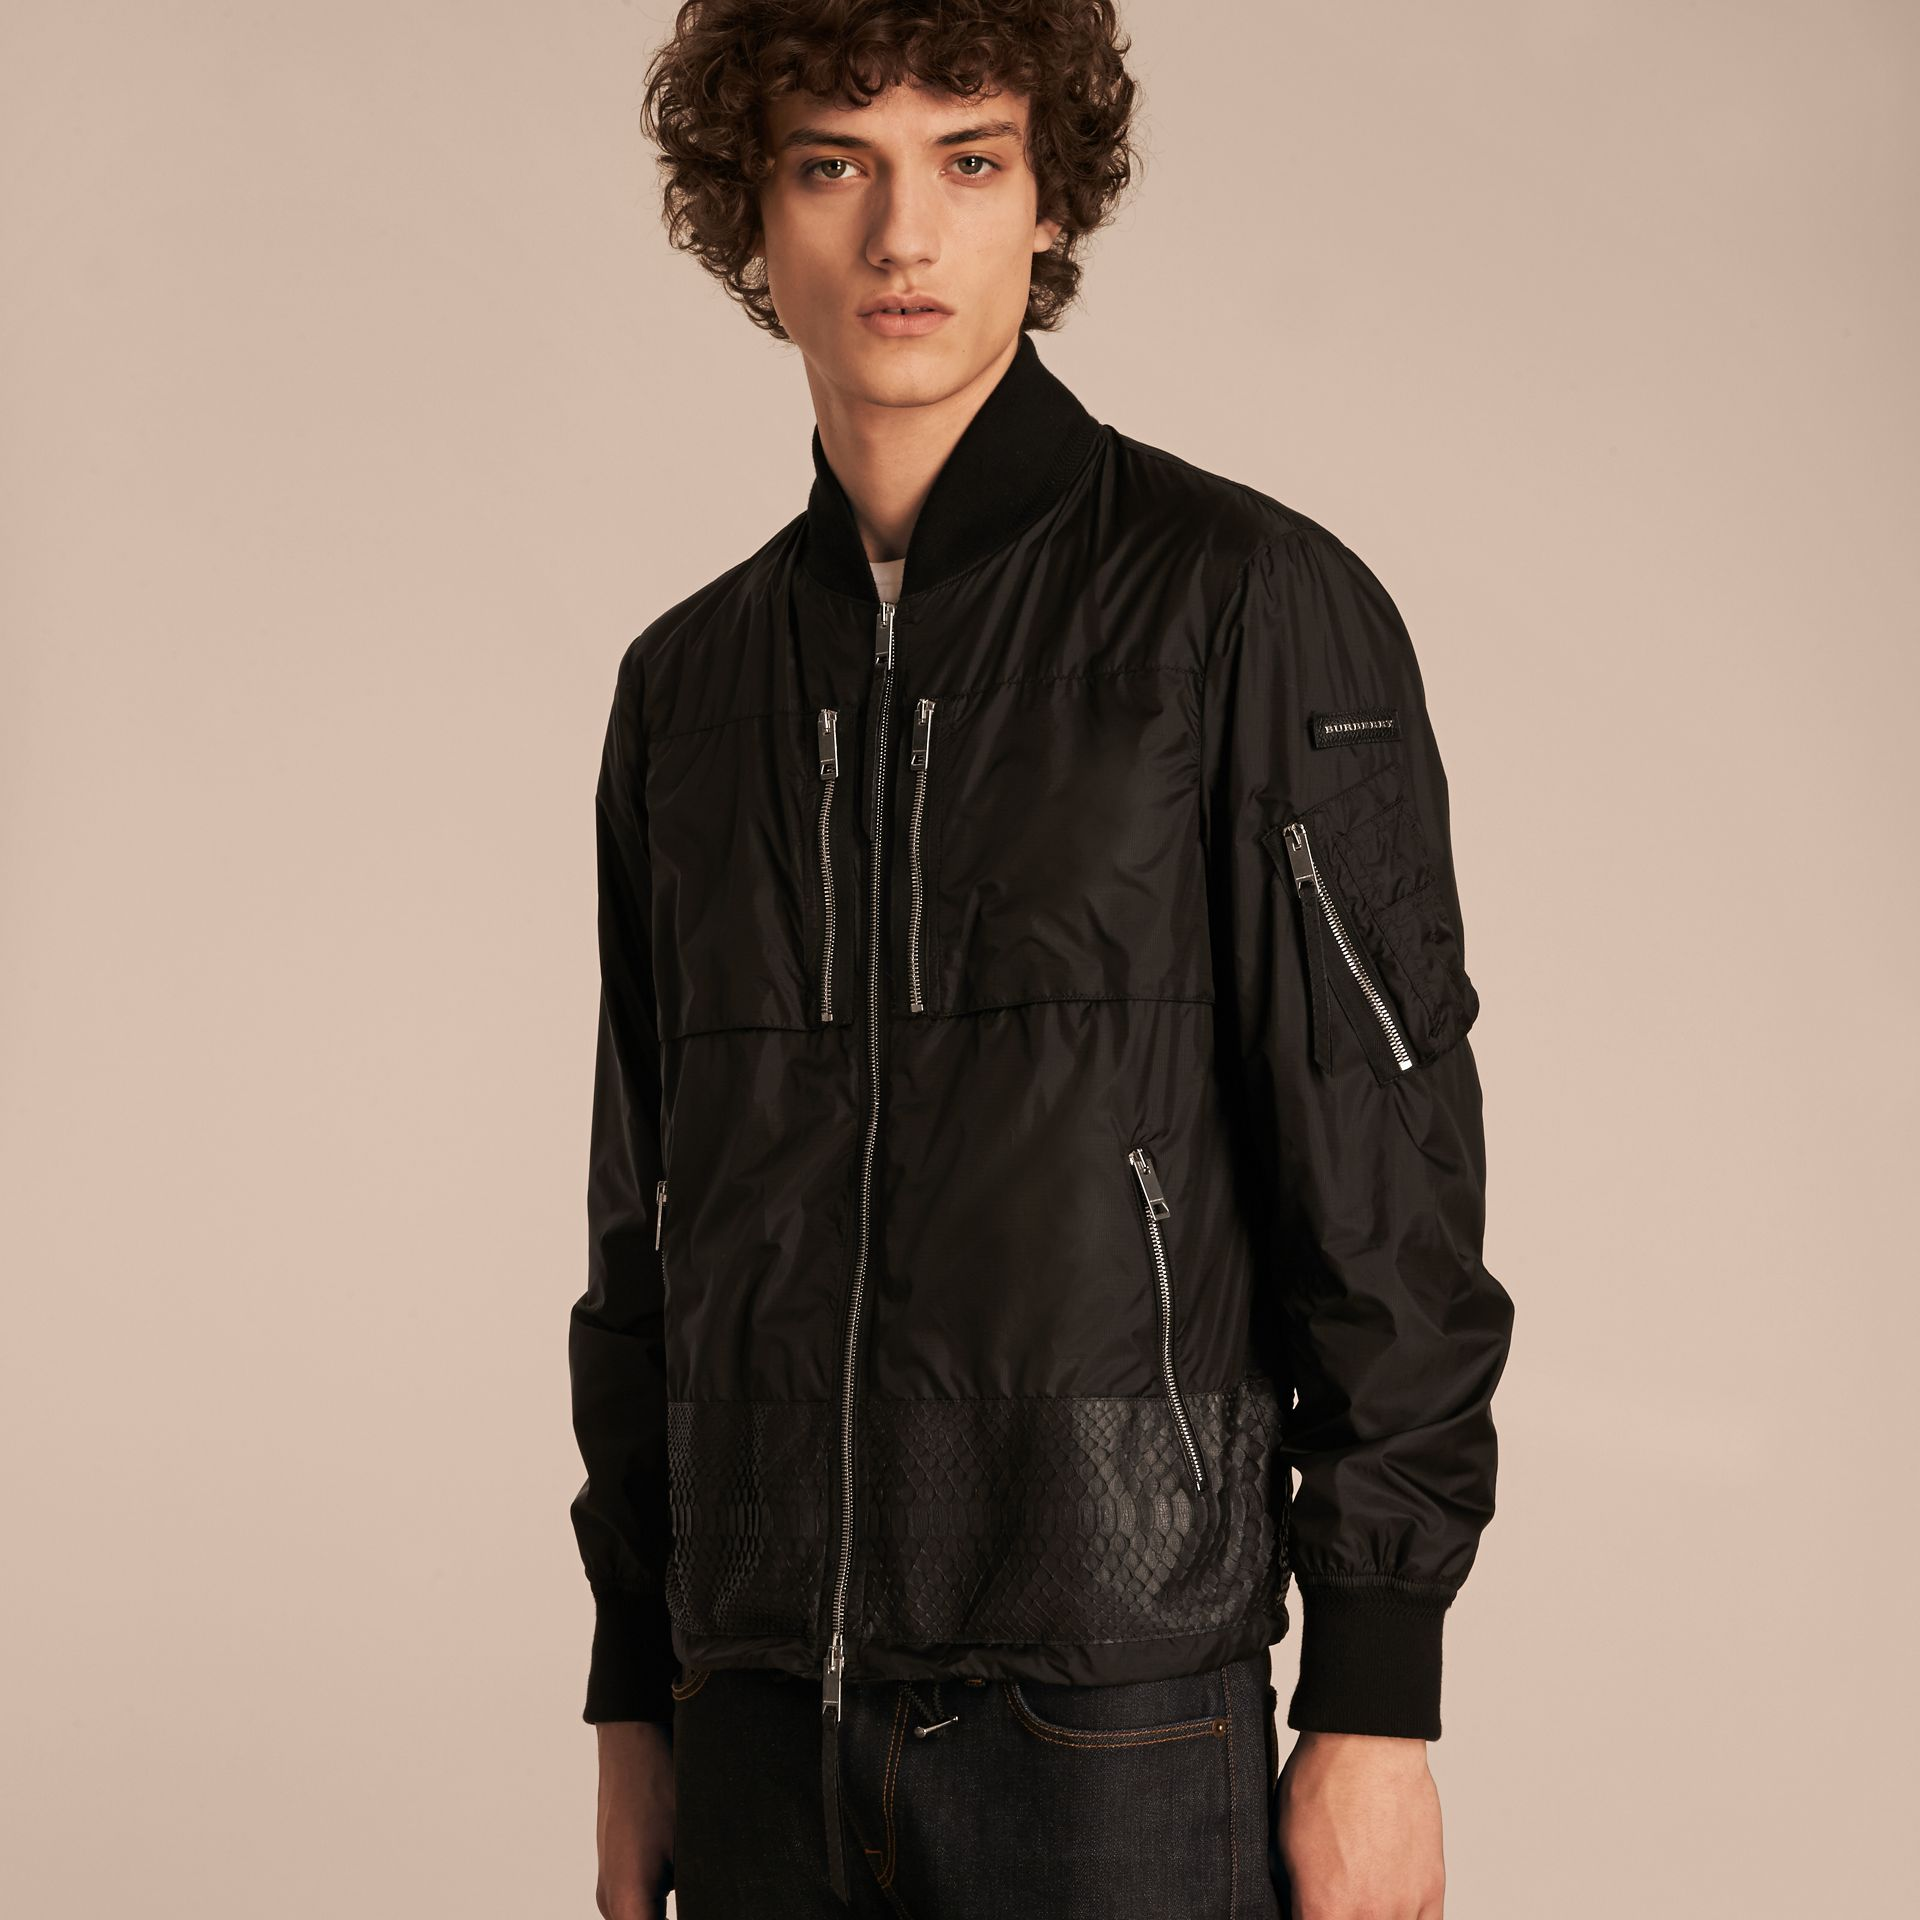 Lightweight Technical Bomber Jacket with Snakeskin in Black - Men | Burberry Canada - gallery image 6